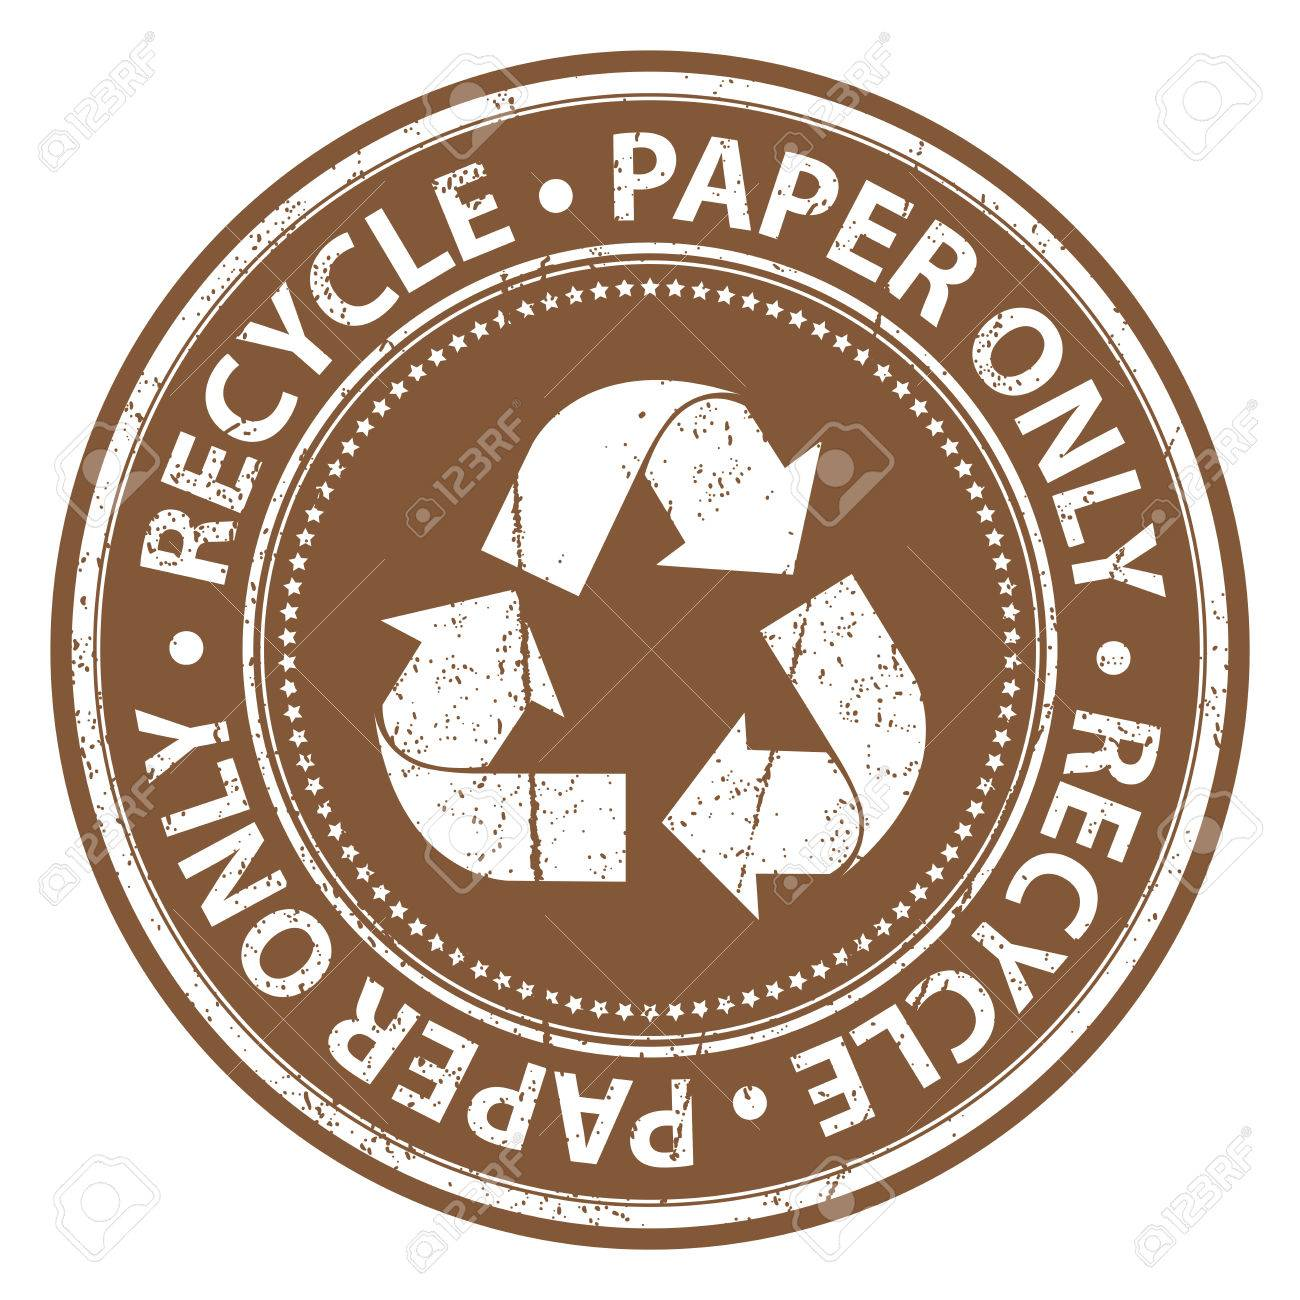 Reasons to recycle paper